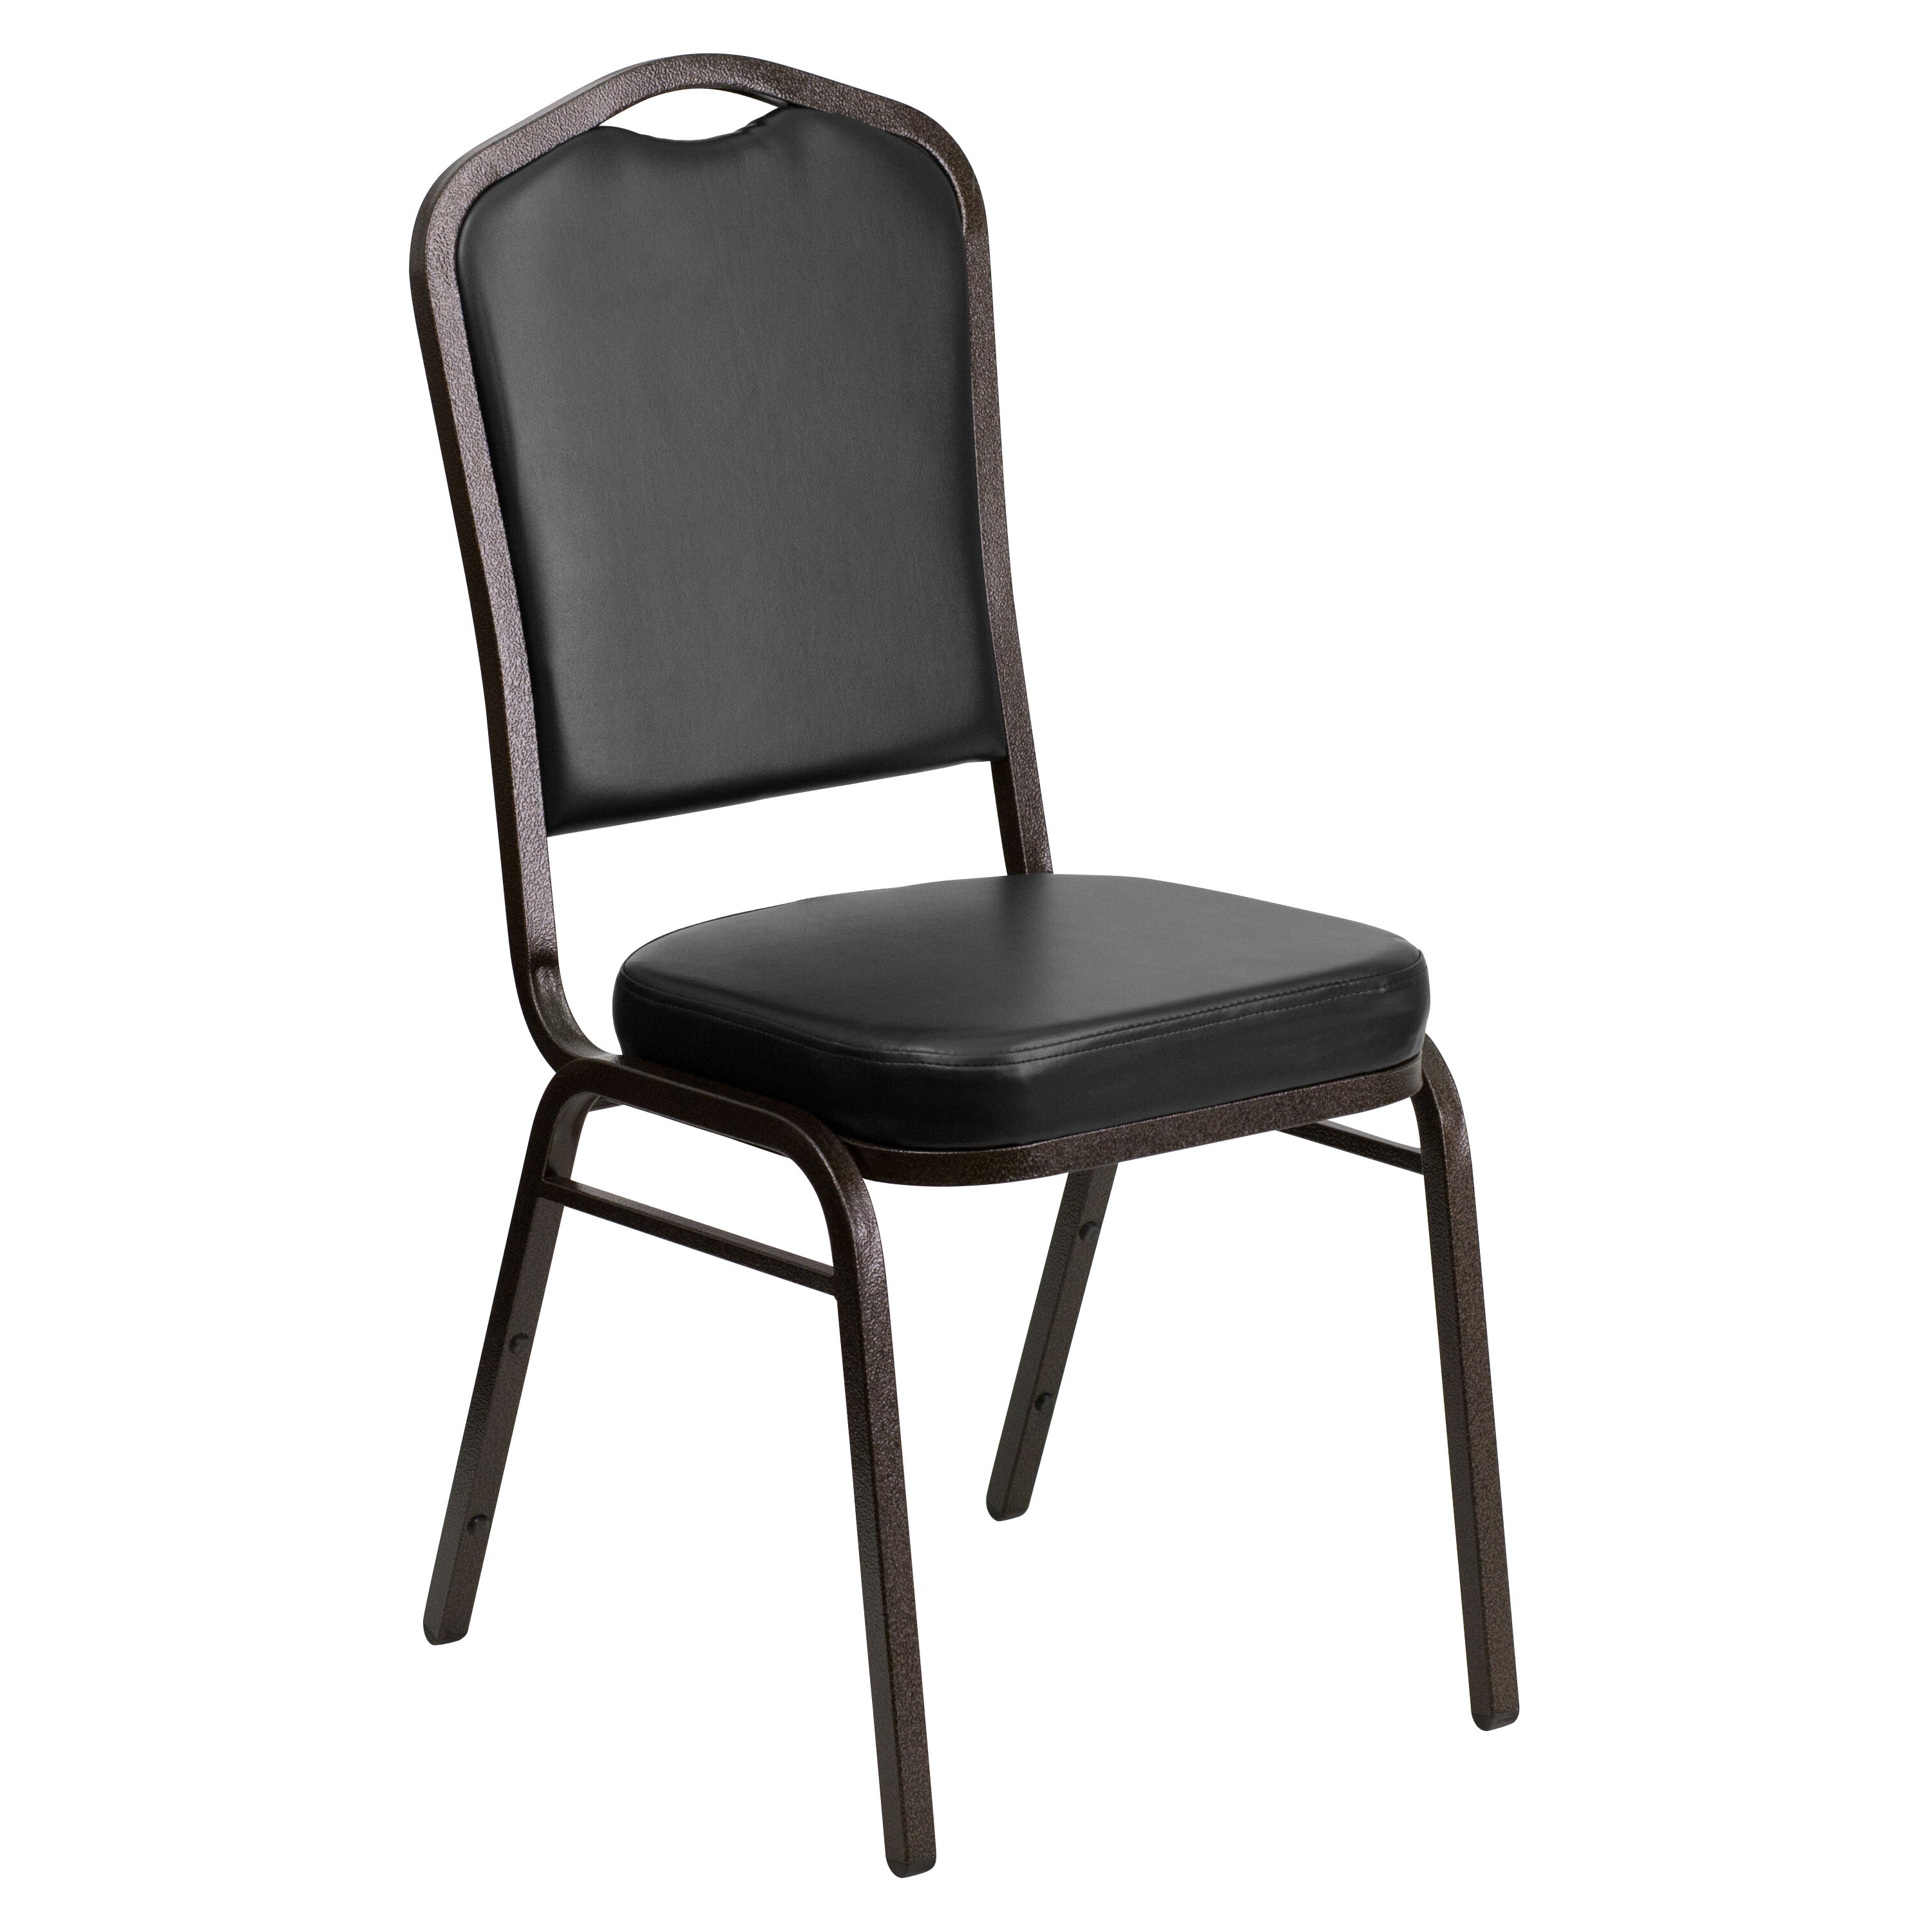 Flash Furniture HERCULES Series Crown Back Stacking Banquet Chair In Black  Vinyl   Gold Vein Frame FD C01 GOLDVEIN BK VY GG | BestChiavariChairs.com